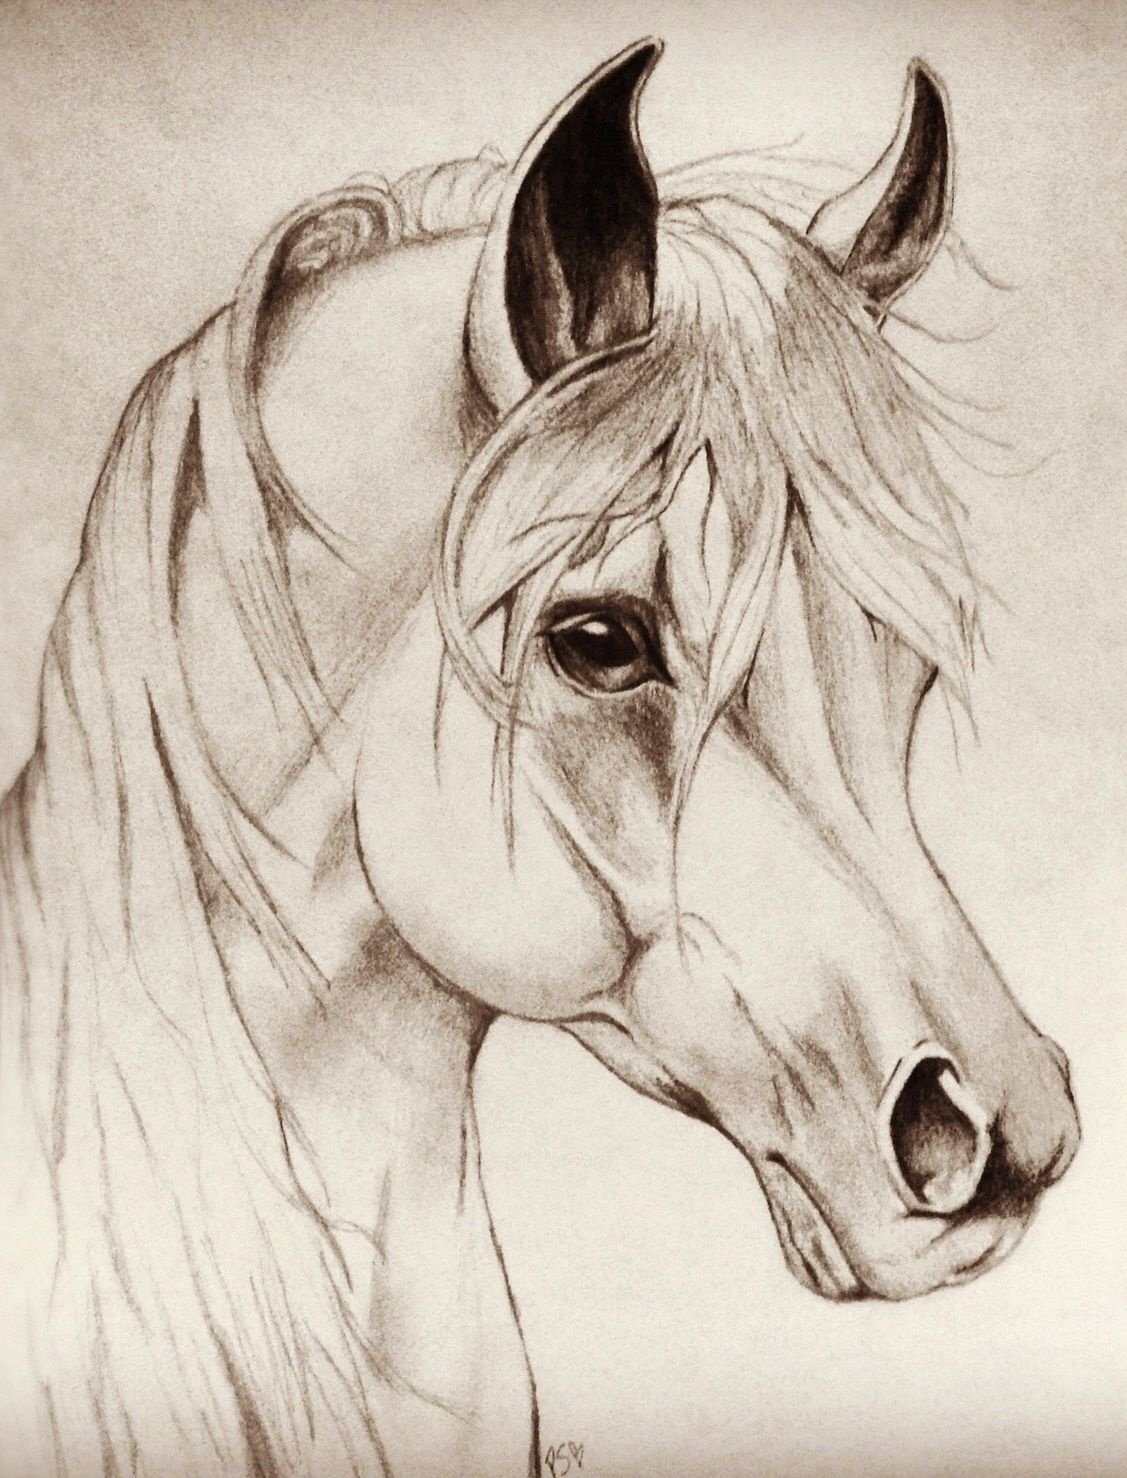 Horse drawing by patrycia sulewski drawn with pencil